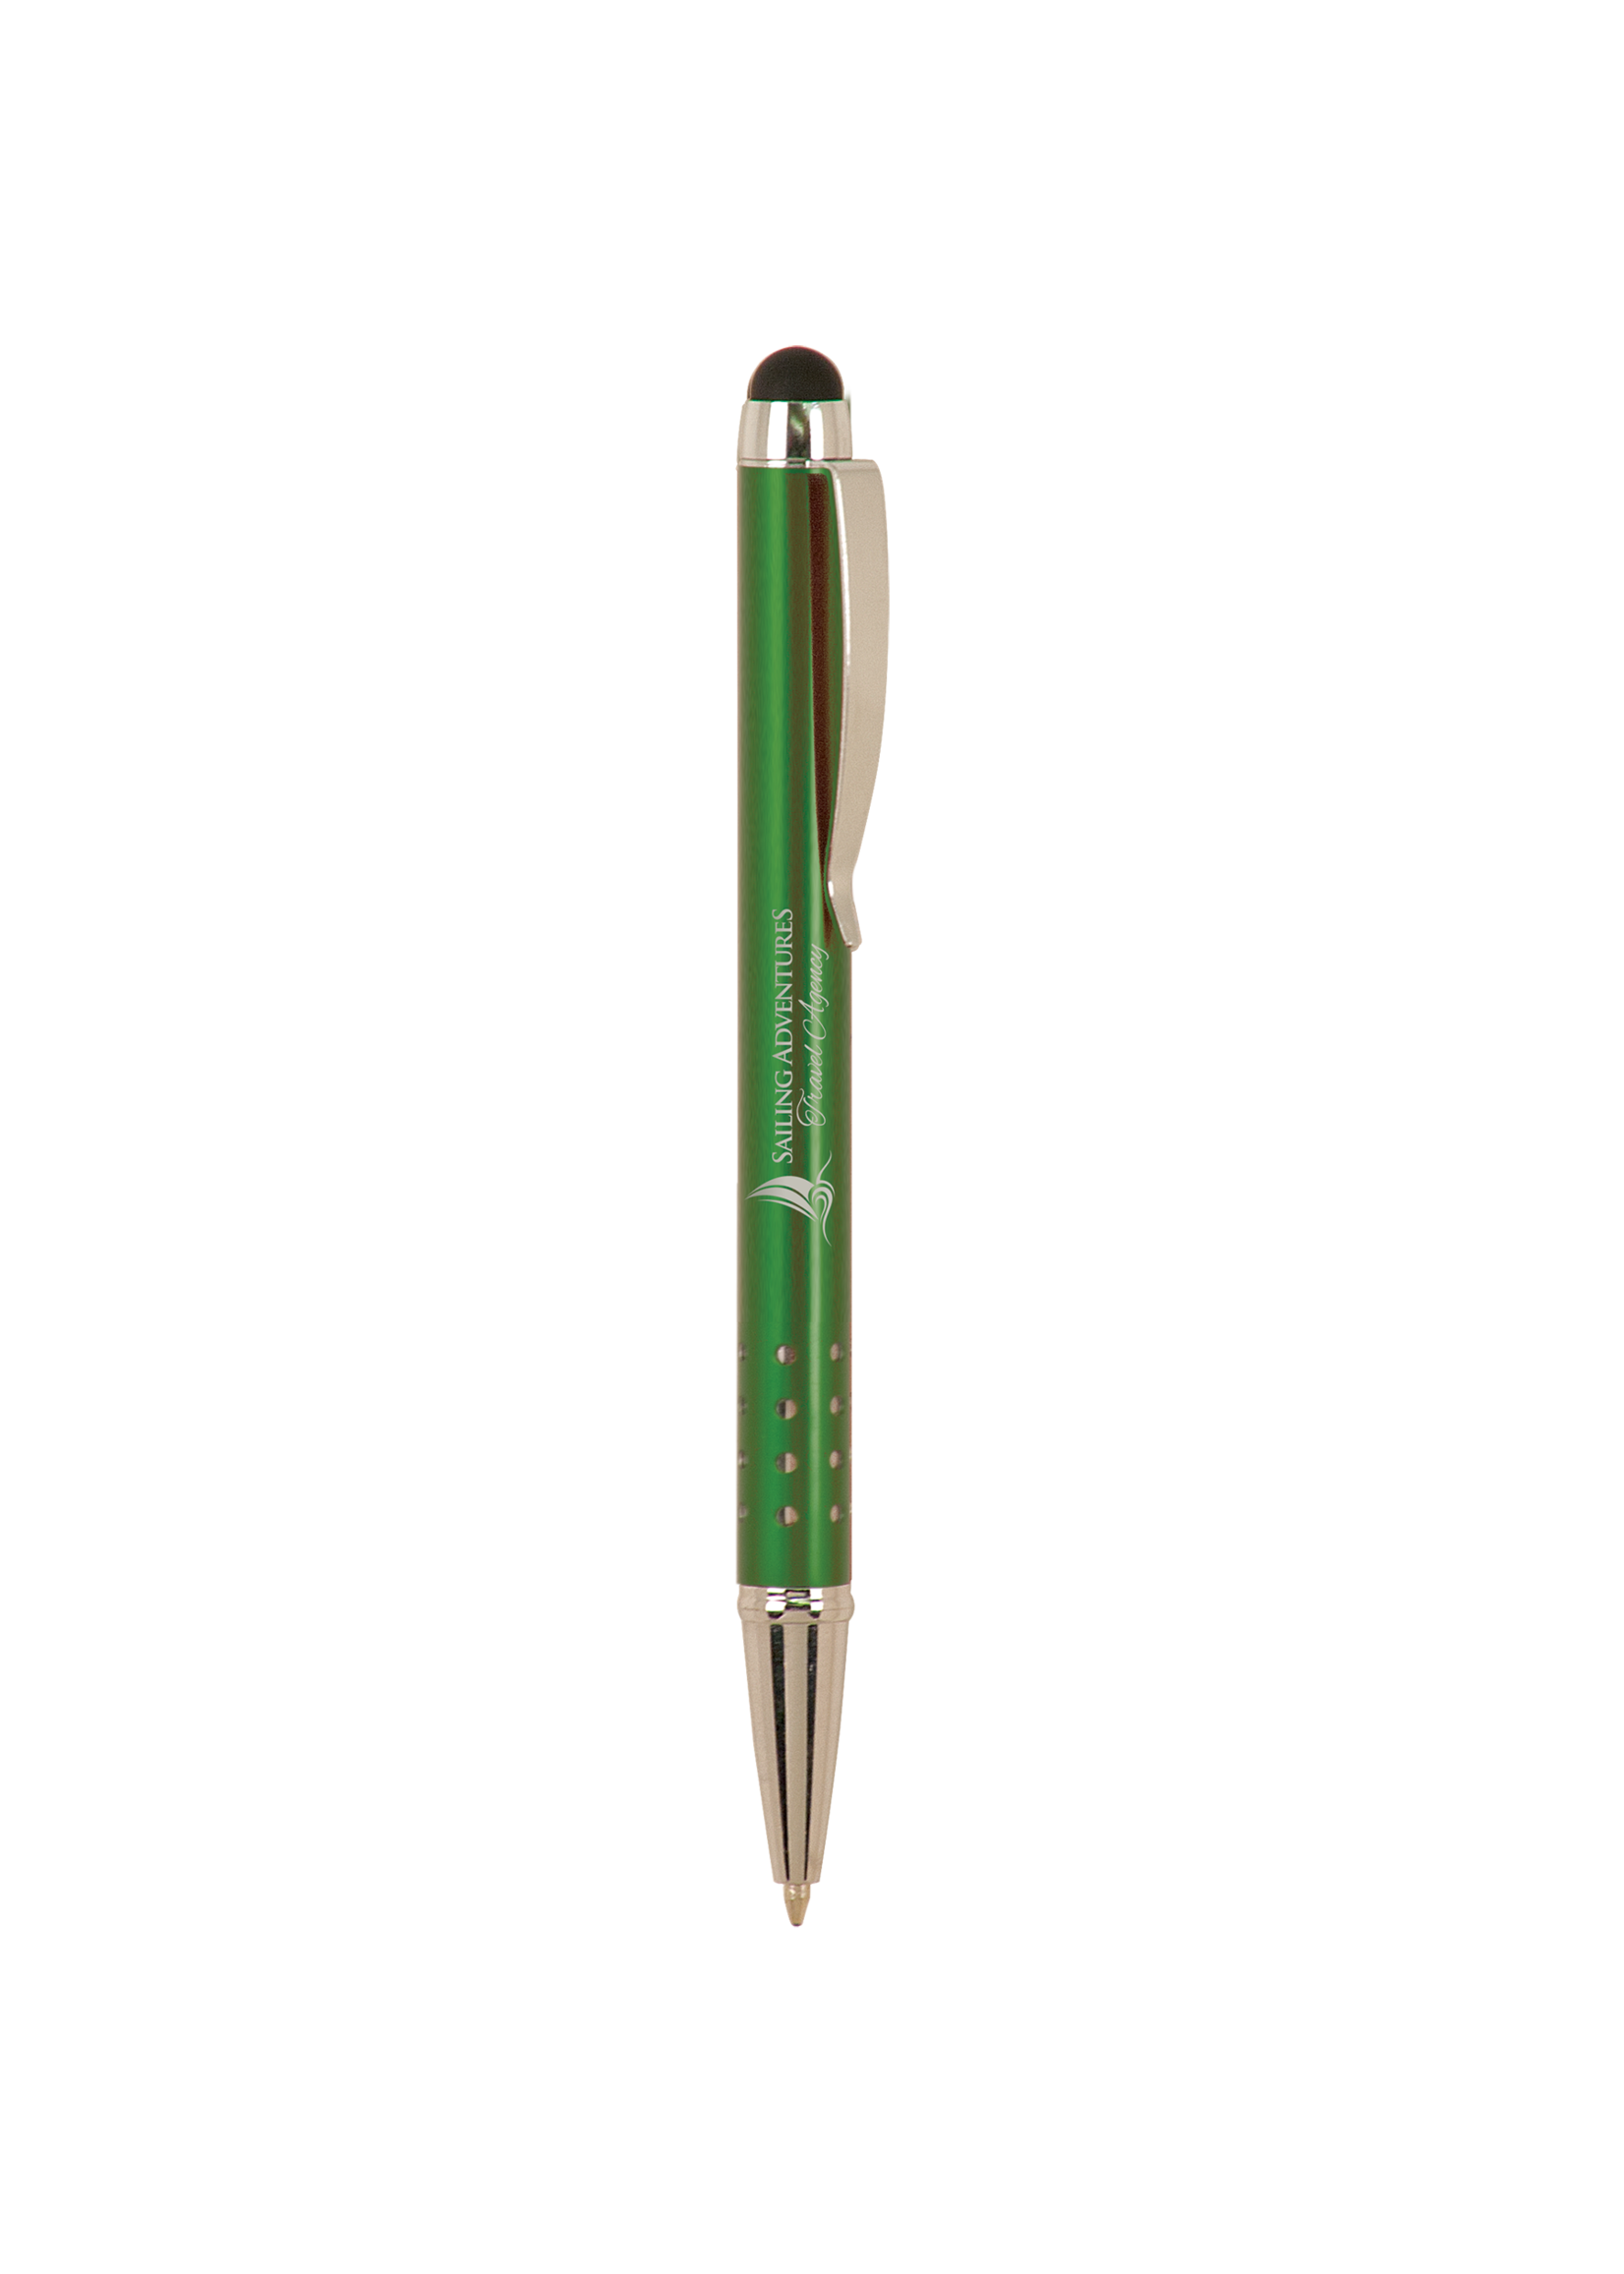 Laserable Pen with Stylus